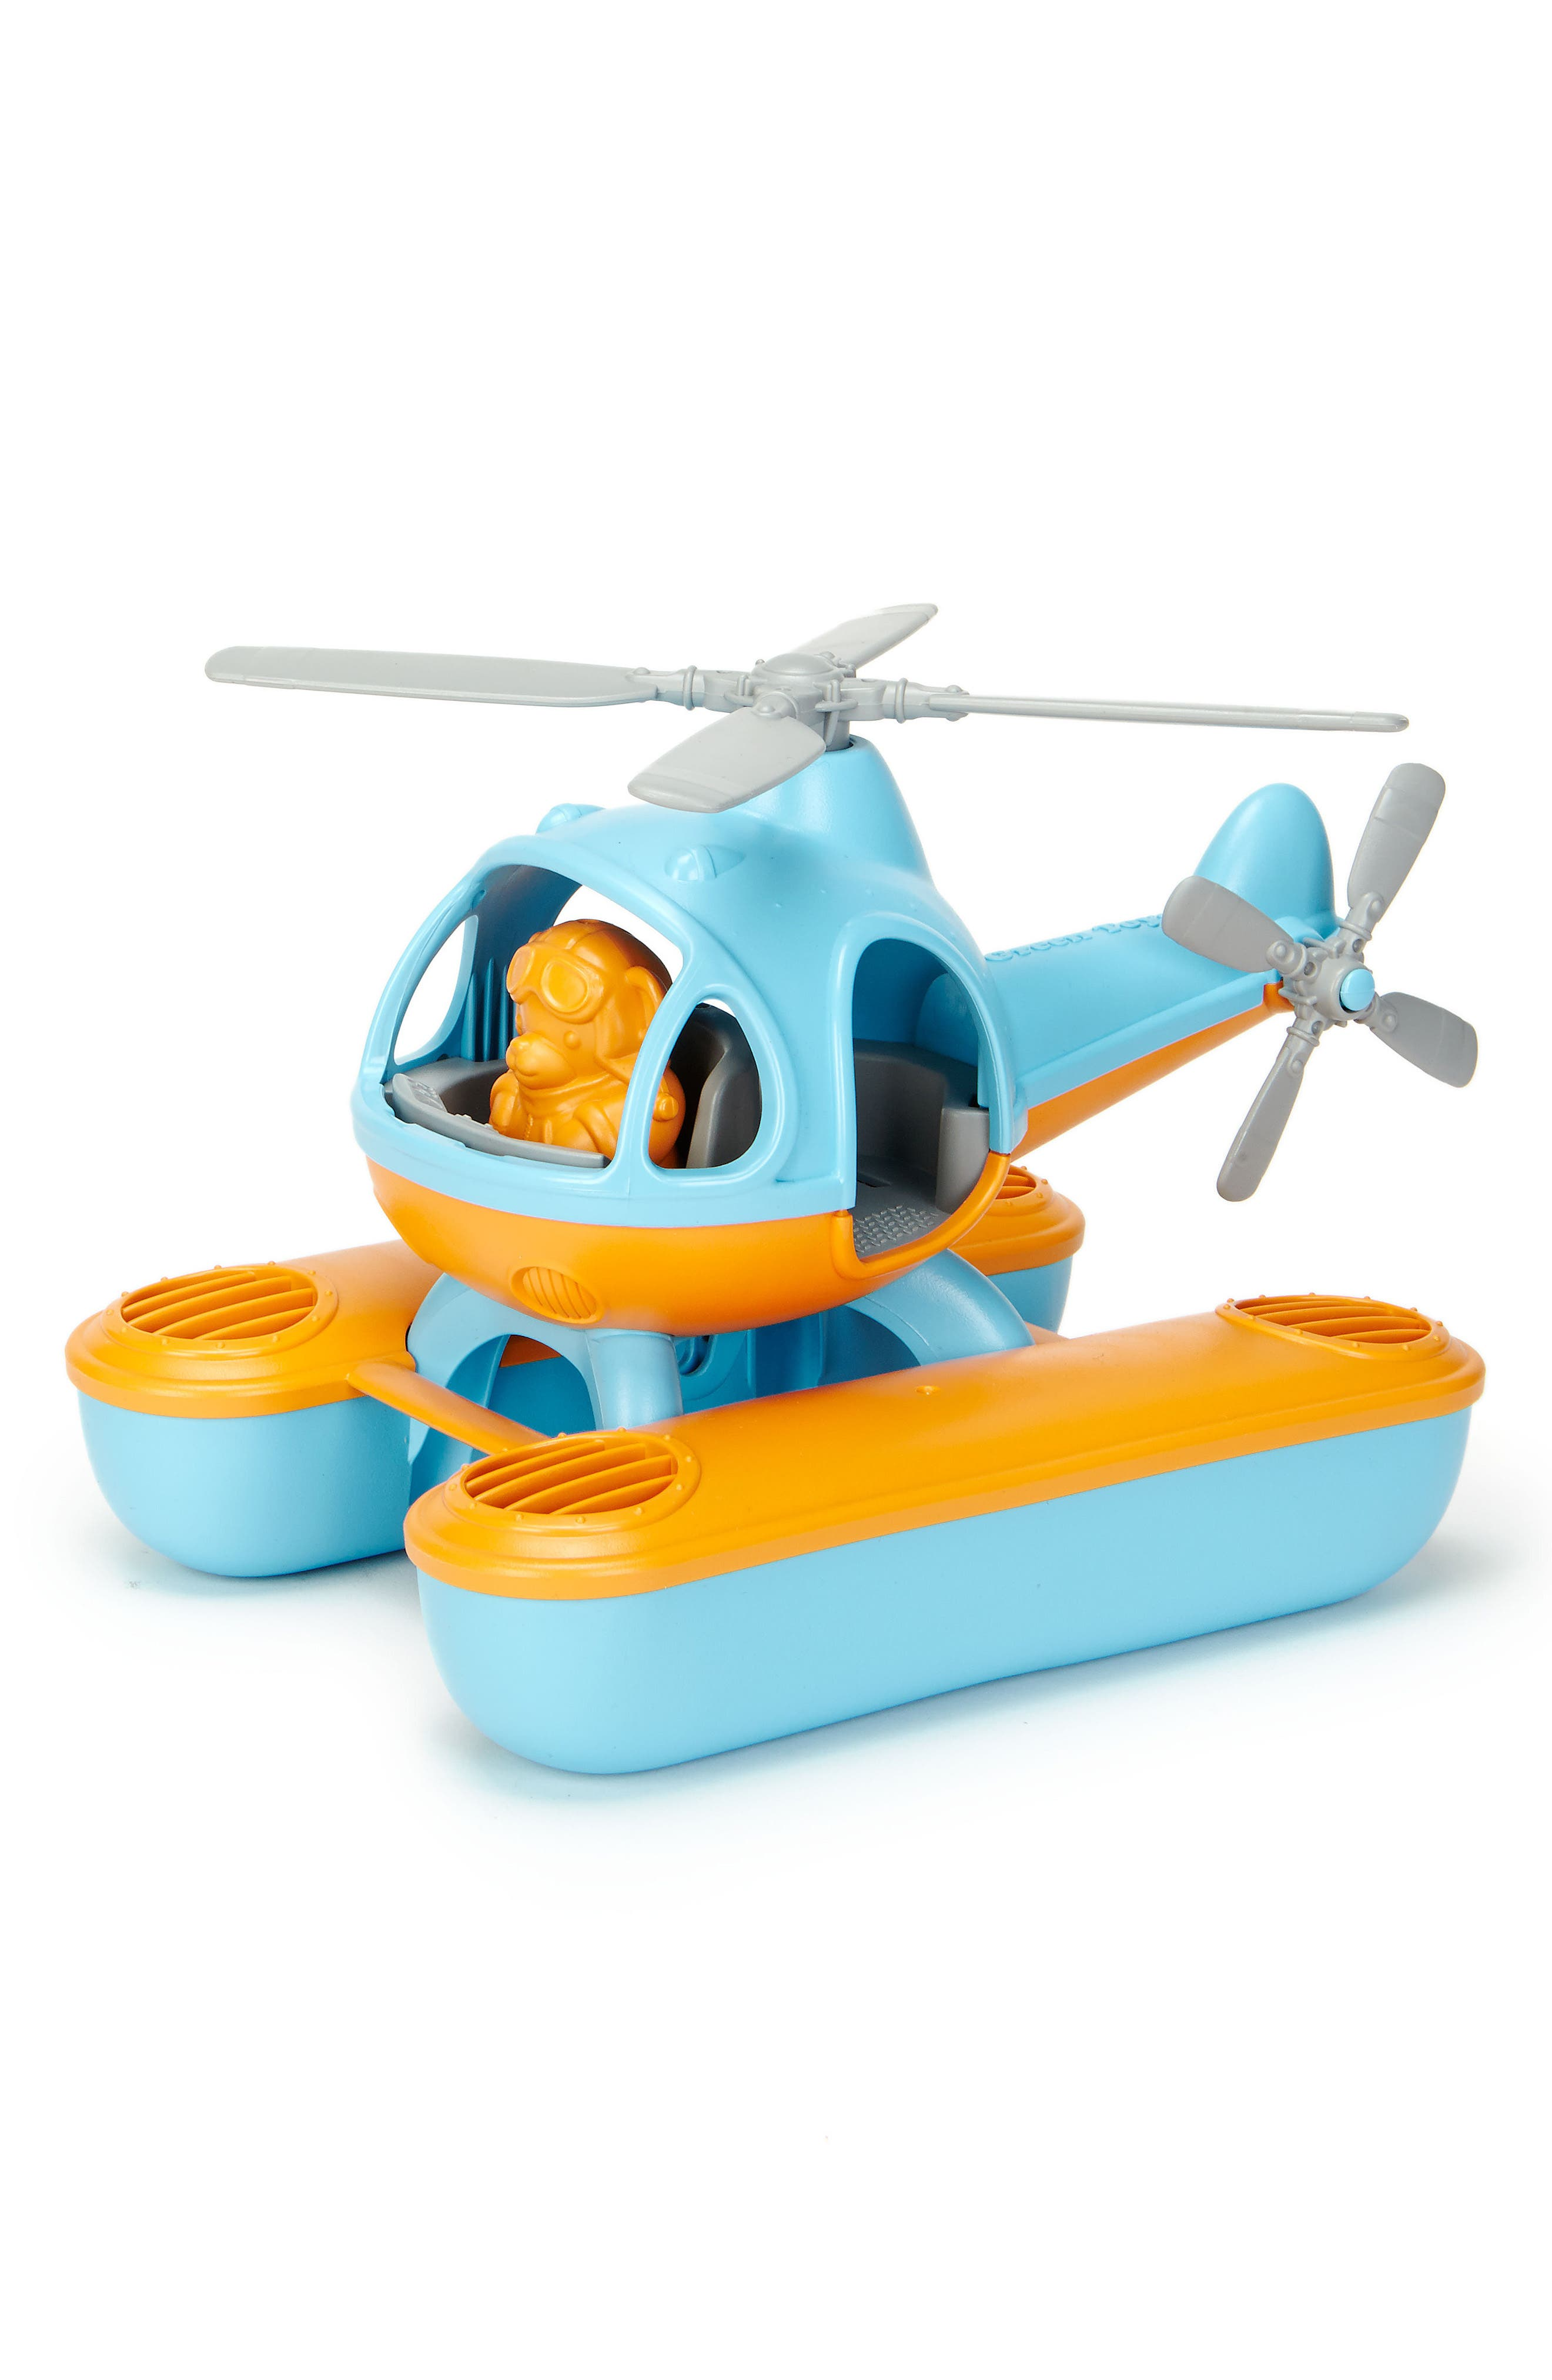 Two-Piece Seacopter Toy,                             Alternate thumbnail 2, color,                             400